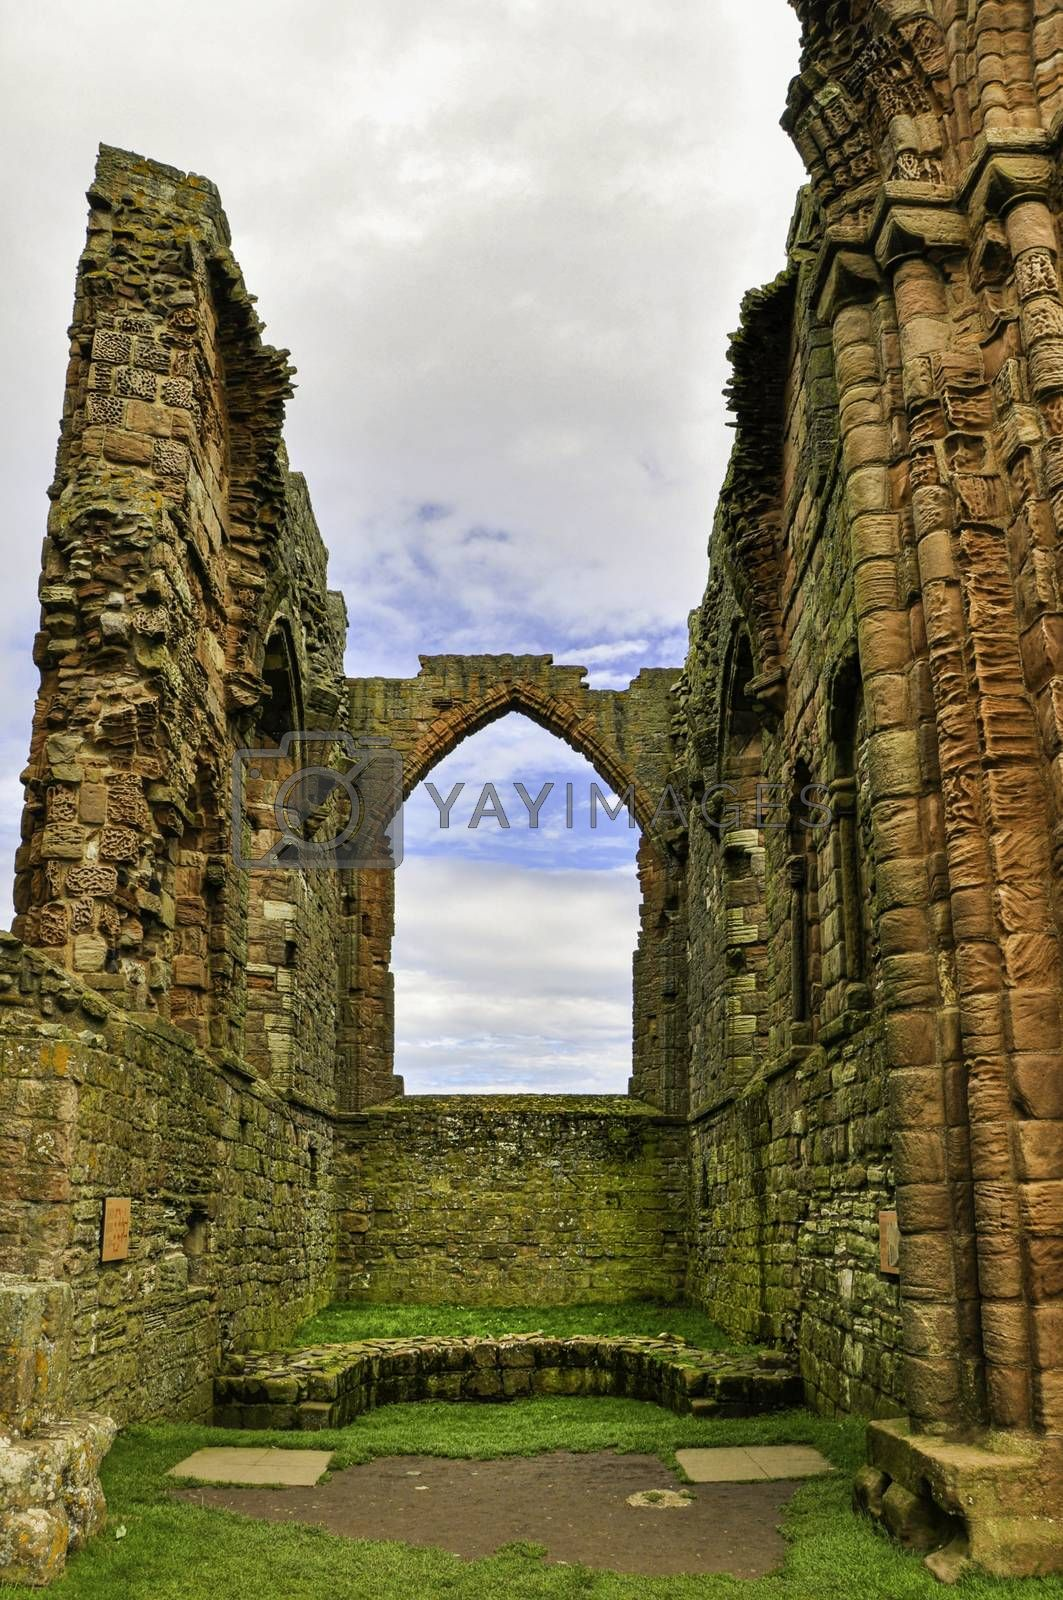 Derelict archway of a ruined old sandstone castle in the United Kingdom.